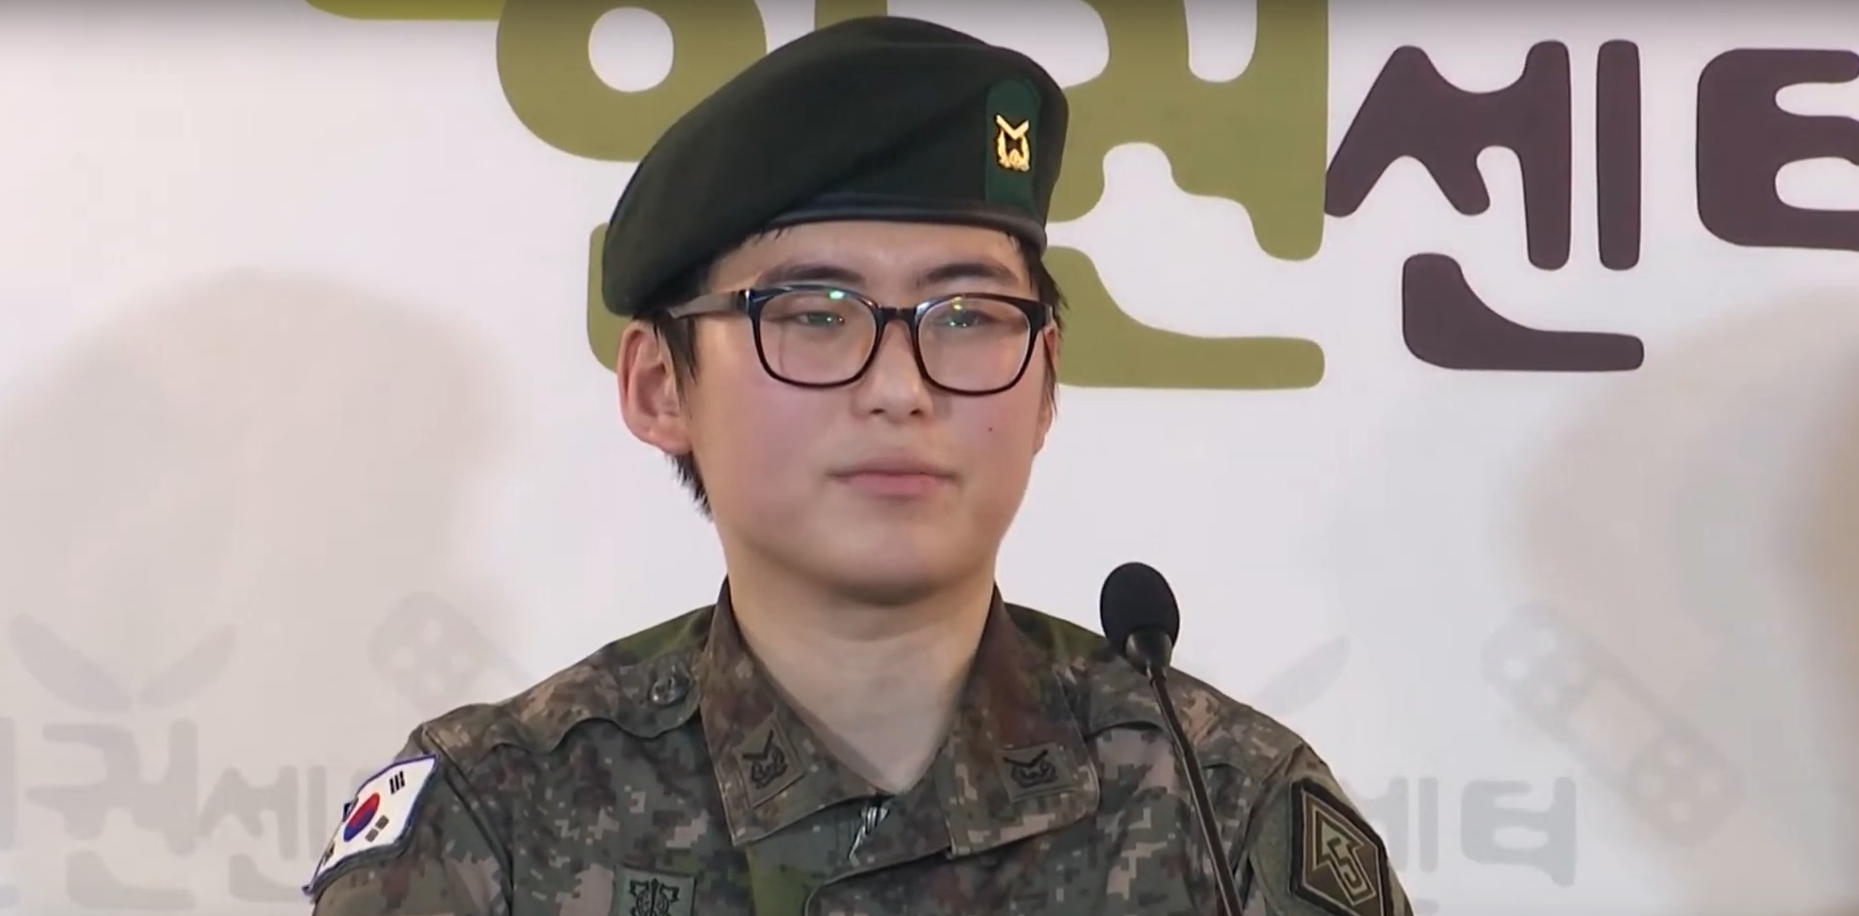 Trans soldier pleads with South Korea military to let her continue serving